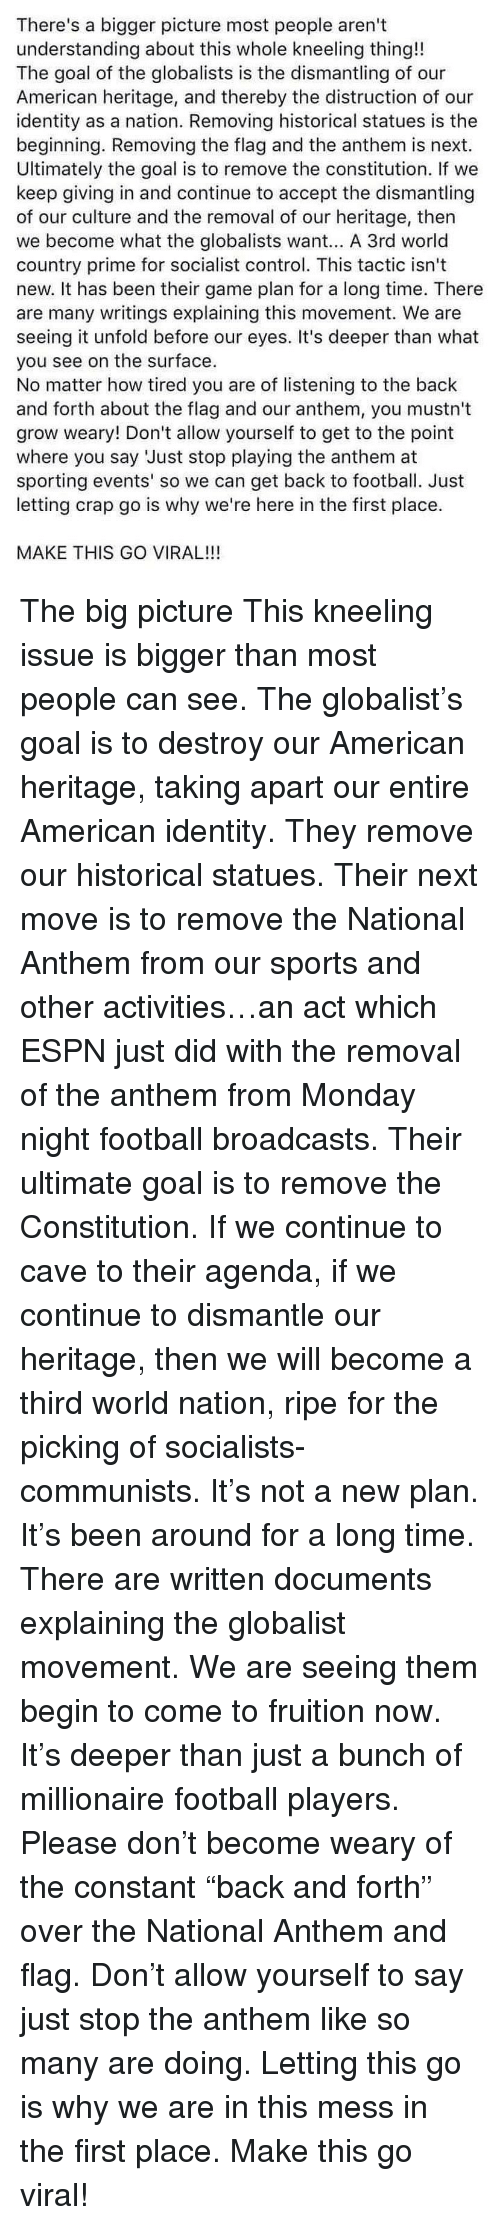 Espn, Football, and Memes: There's a bigger picture most people aren't  understanding about this whole kneeling thing!!  The goal of the globalists is the dismantling of our  American heritage, and thereby the distruction of our  identity as a nation. Removing historical statues is the  beginning. Removing the flag and the anthem is next.  Ultimately the goal is to remove the constitution. If we  keep giving in and continue to accept the dismantling  of our culture and the removal of our heritage, then  we become what the globalists want... A 3rd world  country prime for socialist control. This tactic isn't  new. It has been their game plan for a long time. There  are many writings explaining this movement. We are  seeing it unfold before our eyes. It's deeper than what  you see on the surface.  No matter how tired you are of listening to the back  and forth about the flag and our anthem, you mustn't  grow weary! Don't allow yourself to get to the point  where you say Just stop playing the anthem at  sporting events' so we can get back to football. Just  letting crap go is why we're here in the first place.  MAKE THIS GO VIRAL!!! The big picture This kneeling issue is bigger than most people can see. The globalist's goal is to destroy our American heritage, taking apart our entire American identity. They remove our historical statues. Their next move is to remove the National Anthem from our sports and other activities…an act which ESPN just did with the removal of the anthem from Monday night football broadcasts. Their ultimate goal is to remove the Constitution. If we continue to cave to their agenda, if we continue to dismantle our heritage, then we will become a third world nation, ripe for the picking of socialists-communists. It's not a new plan. It's been around for a long time. There are written documents explaining the globalist movement. We are seeing them begin to come to fruition now. It's deeper than just a bunch of millionaire football players. Please 